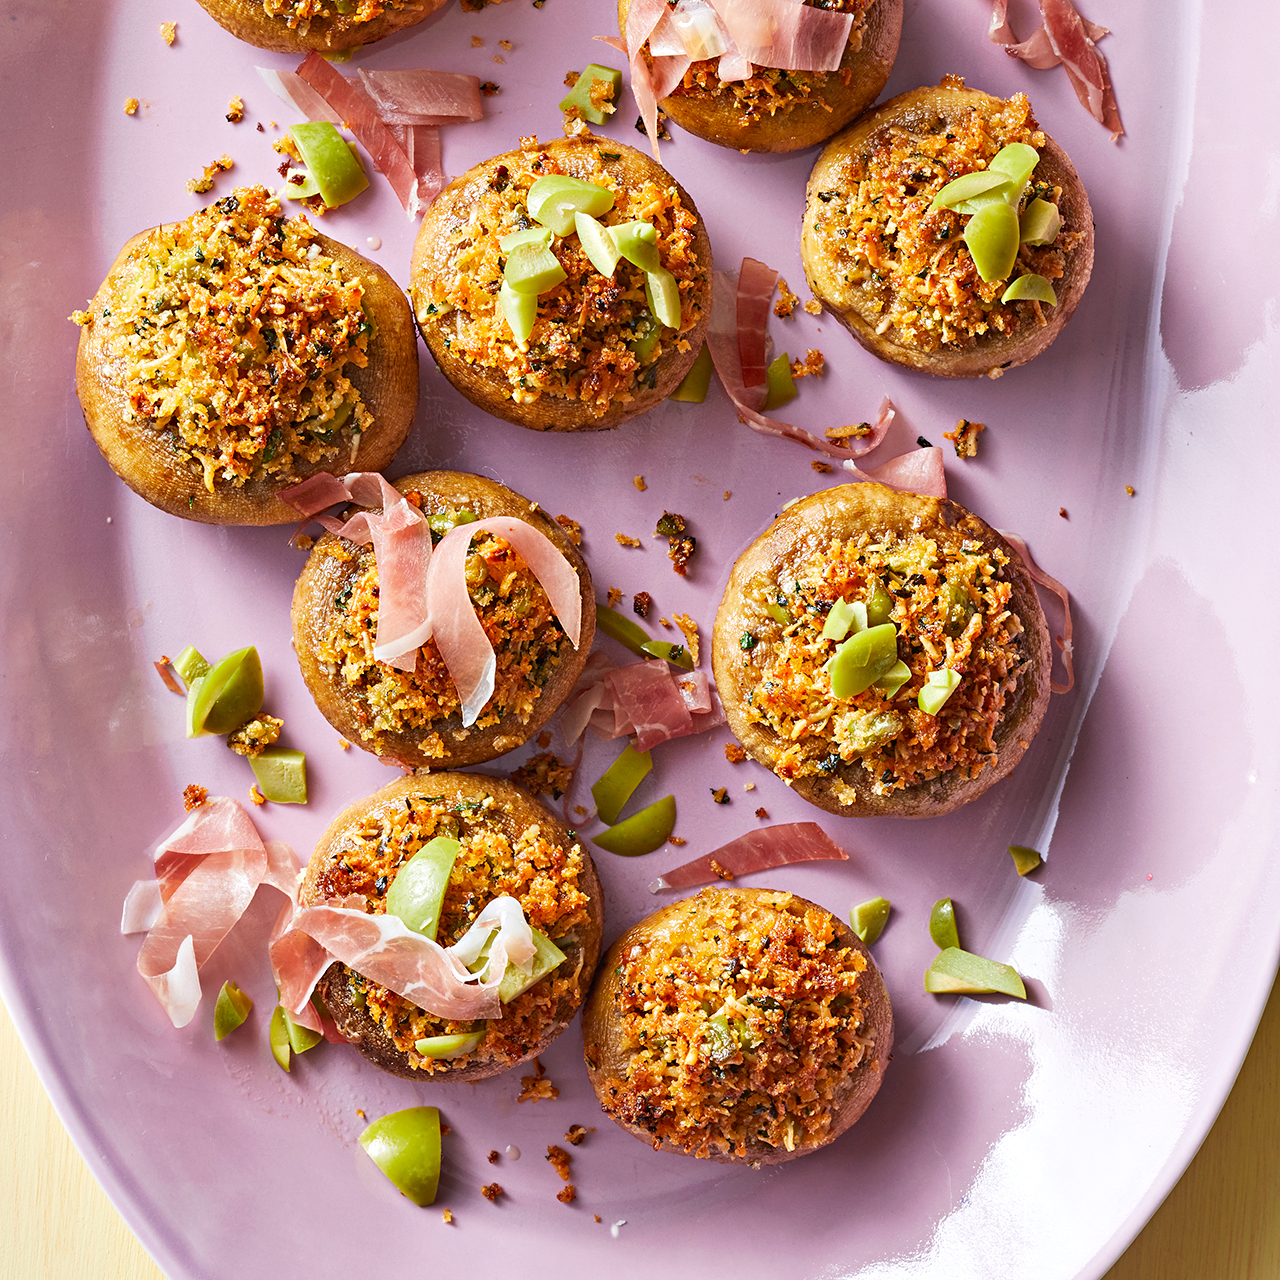 manchego cheese-stuffed mushrooms with olives